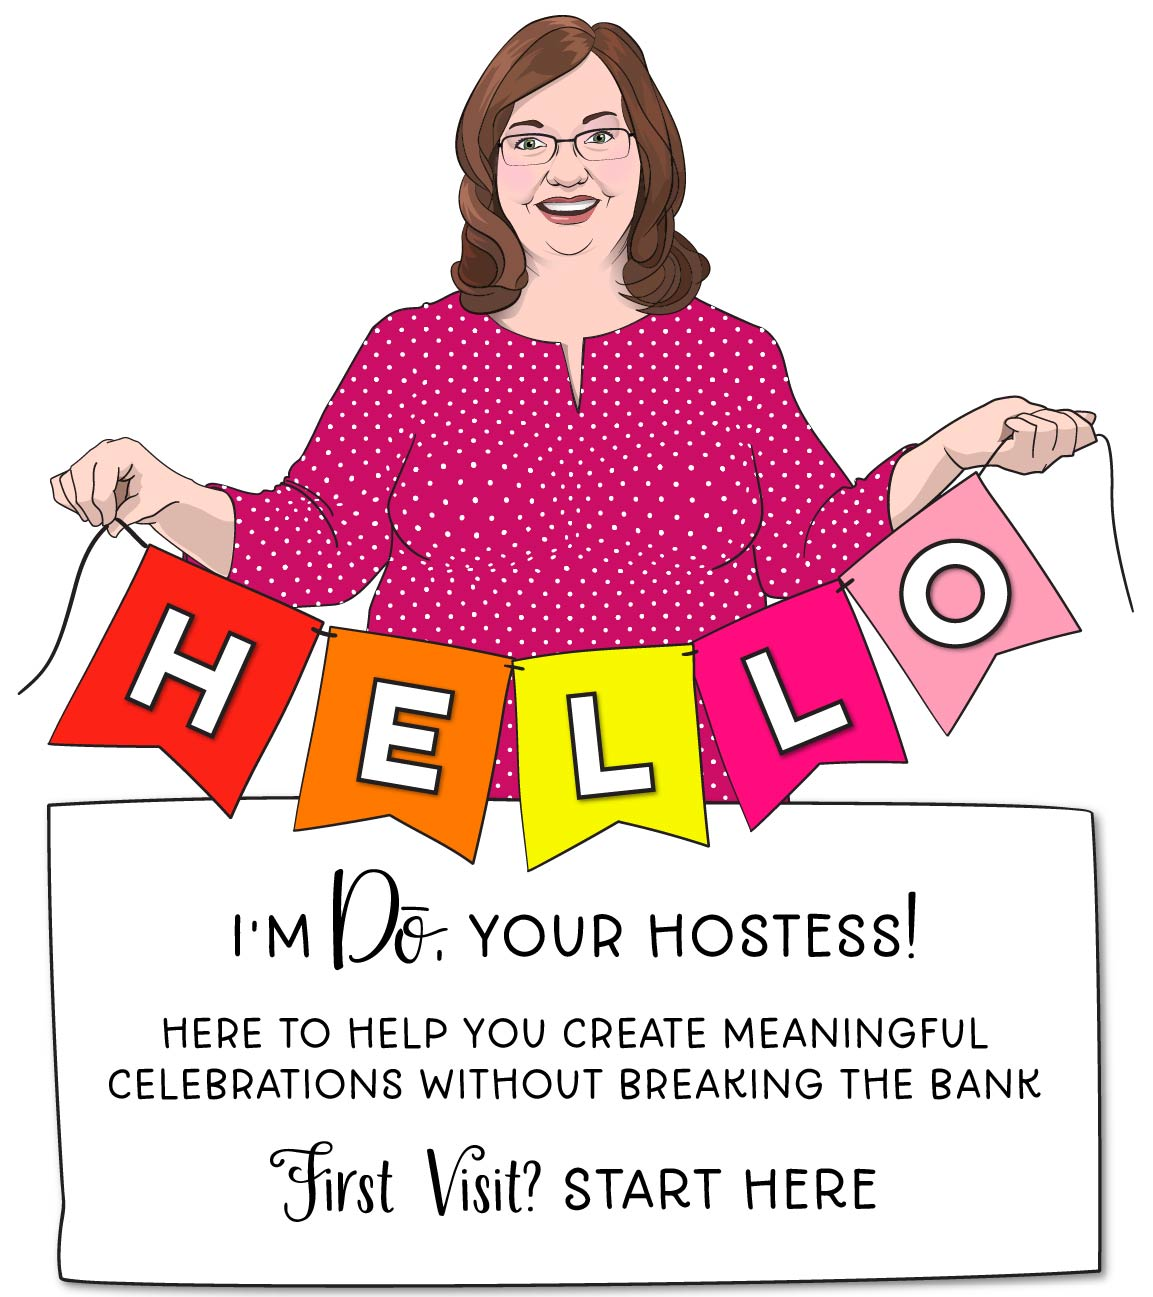 Hello! I'm Do, your hostess, here to help you create meaningful celebrations that won't break the bank.